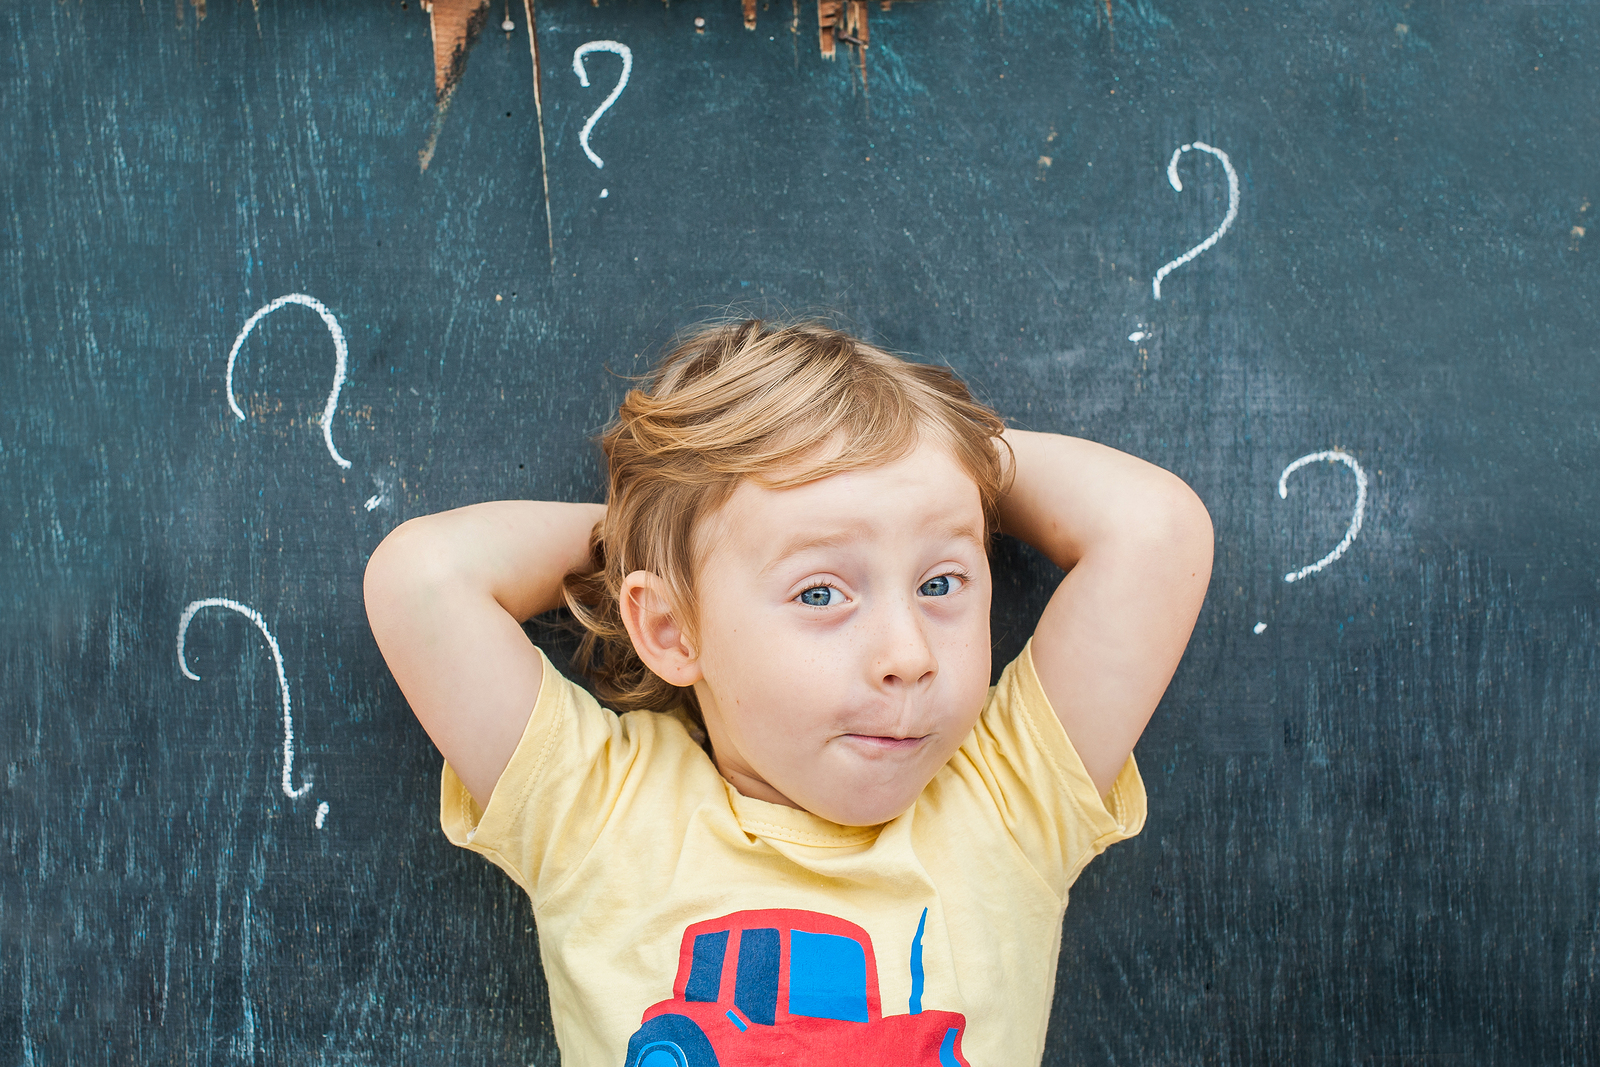 If we want to really know how our kids' days unfolded, we need to ask better questions.